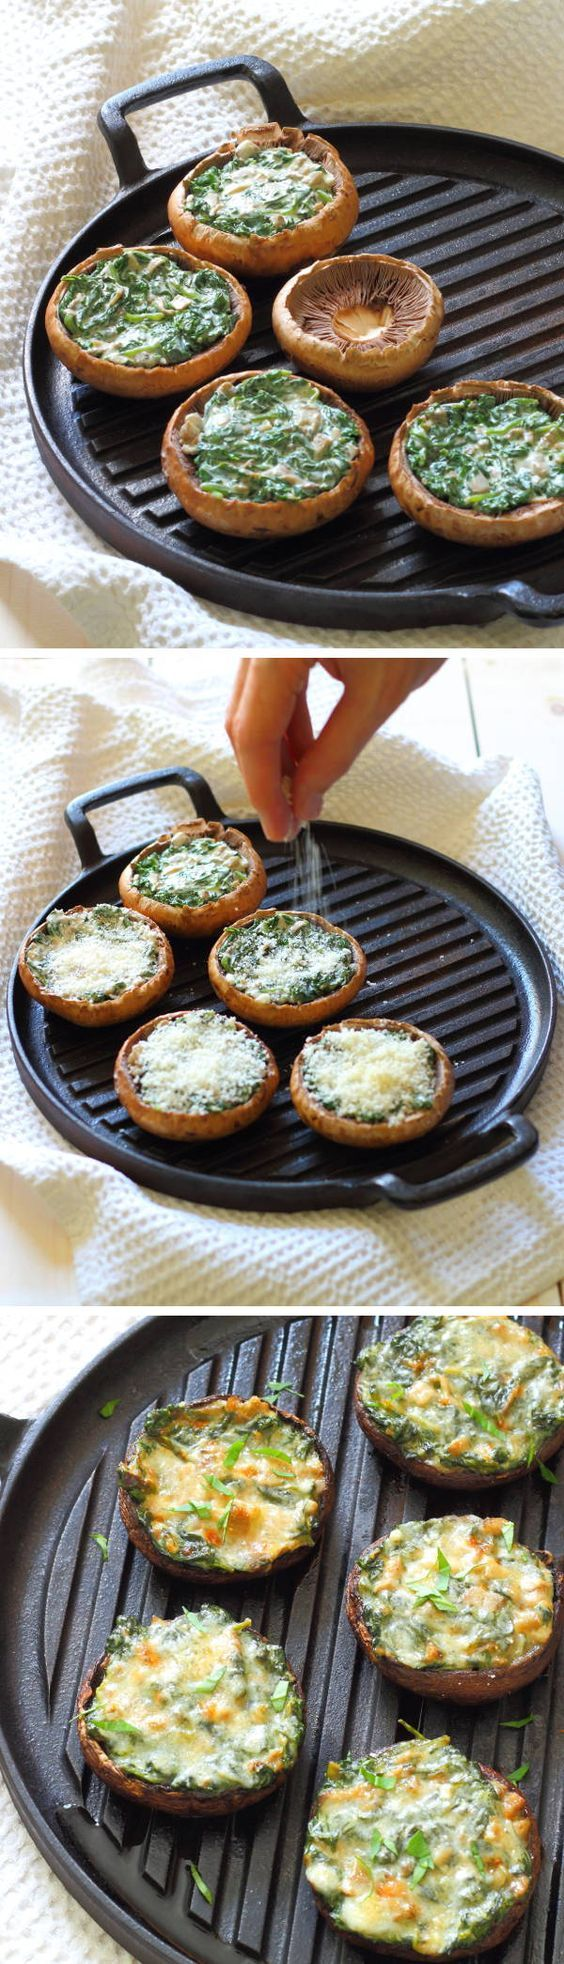 Creamy Spinach Stuffed Mushroom Recipe - Portobello mushrooms stuffed with creamy garlic spinach, then topped with grated parmesan - a great appetizer or light lunch!   @slcekitchenlife sliceofkitchenlife.com